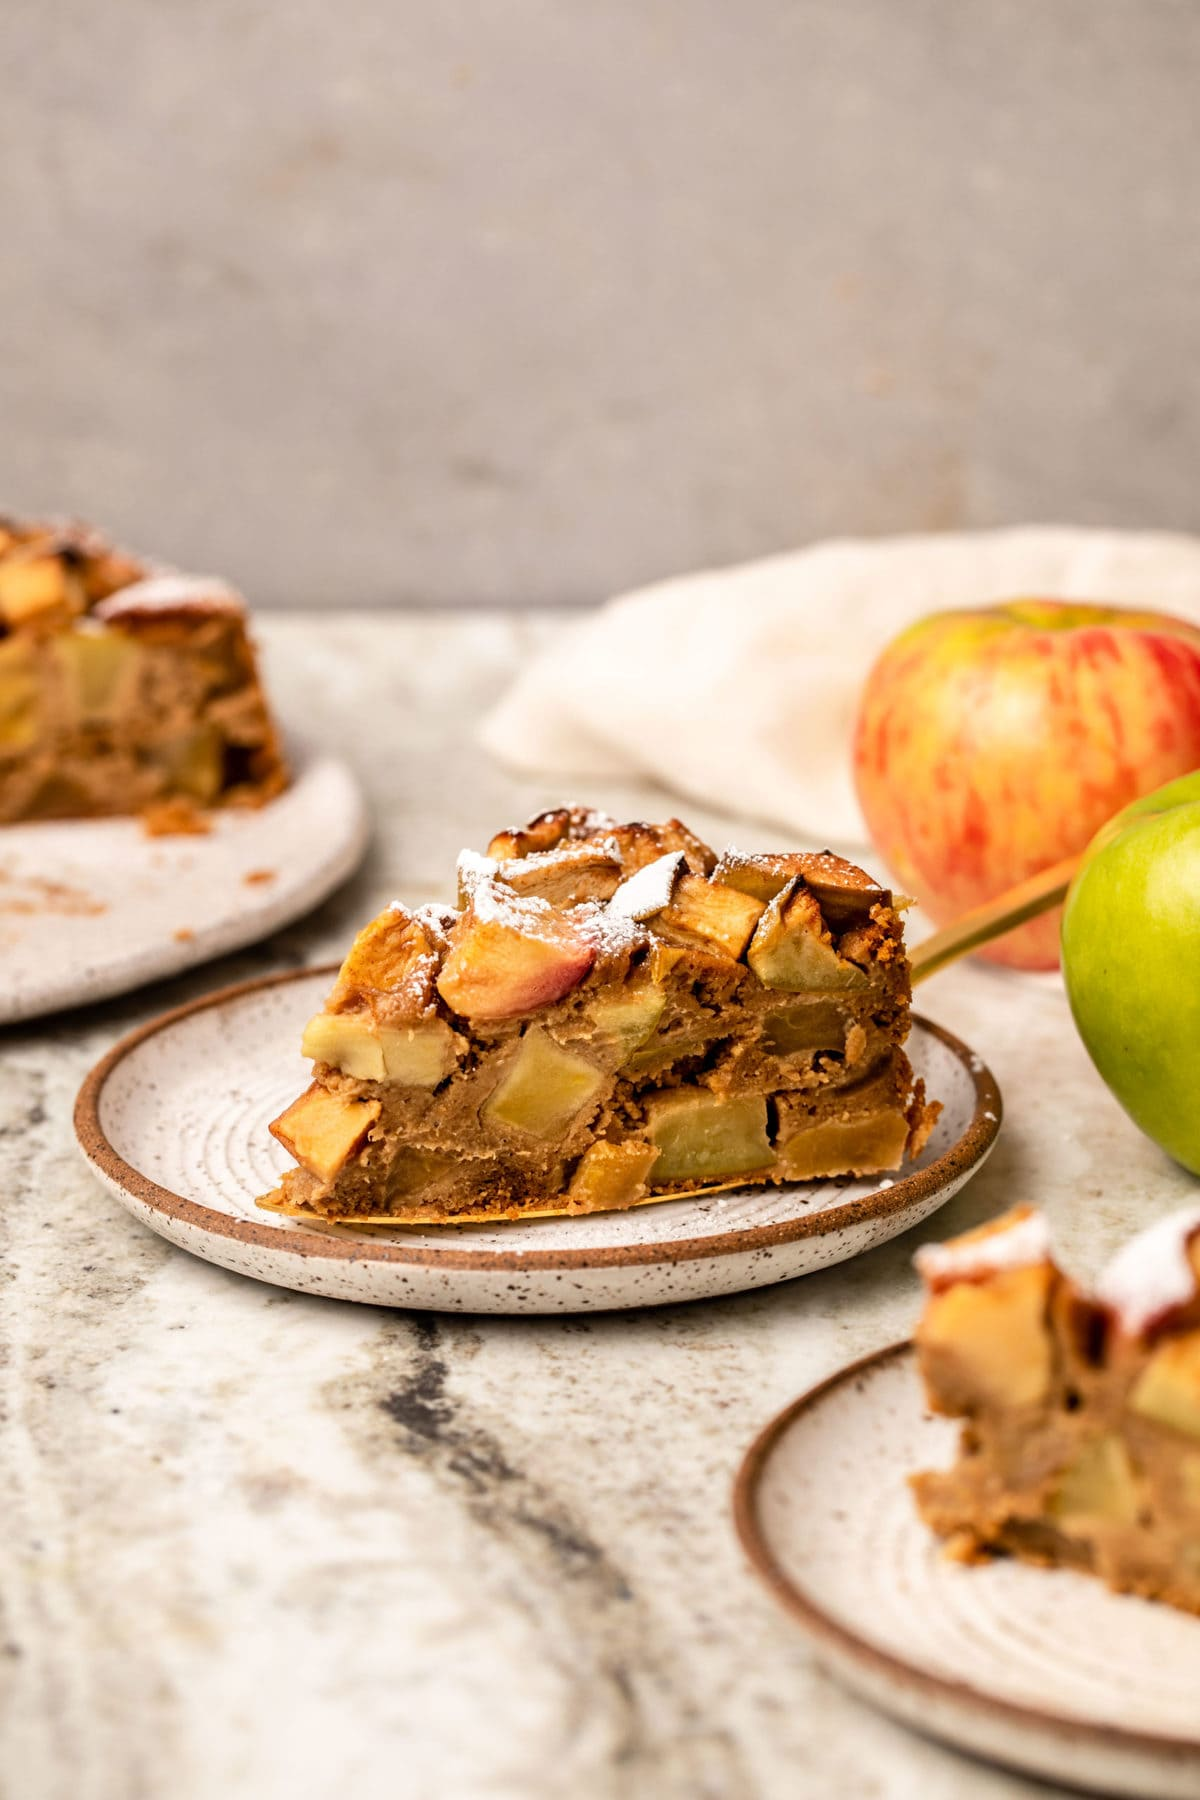 slice of apple cake on plate surrounded by fresh apples